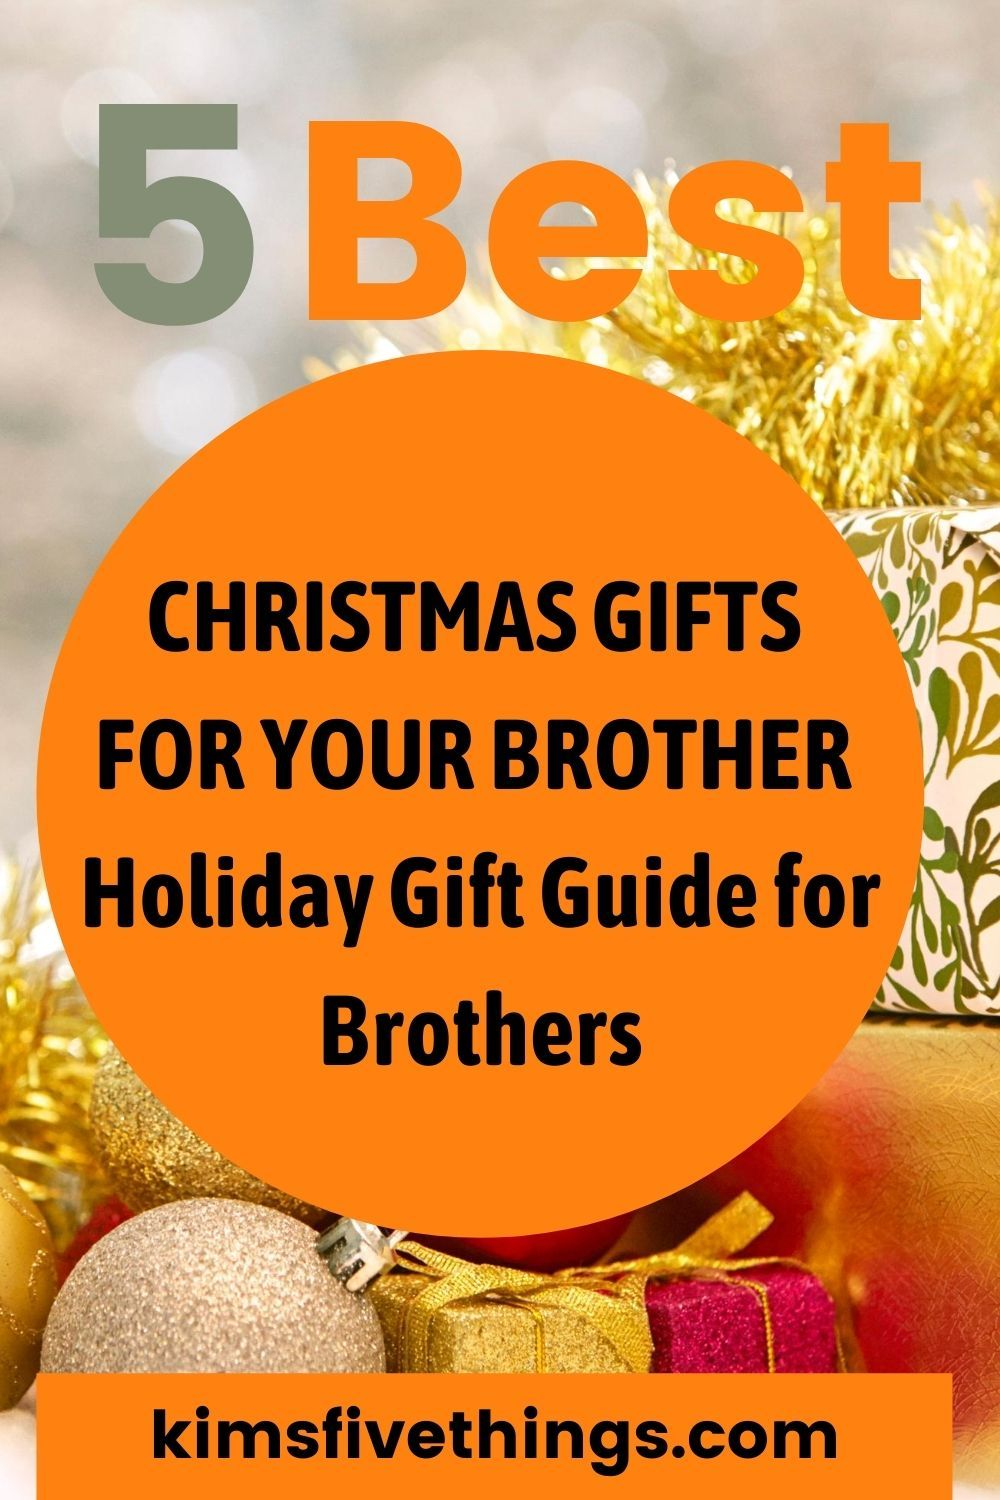 Top 5 Christmas Gifts For Your Brother Quirky Christmas Gifts 2020 Kims Home Ideas In 2020 Quirky Christmas Gifts Christmas Gift For You Top 5 Christmas Gifts